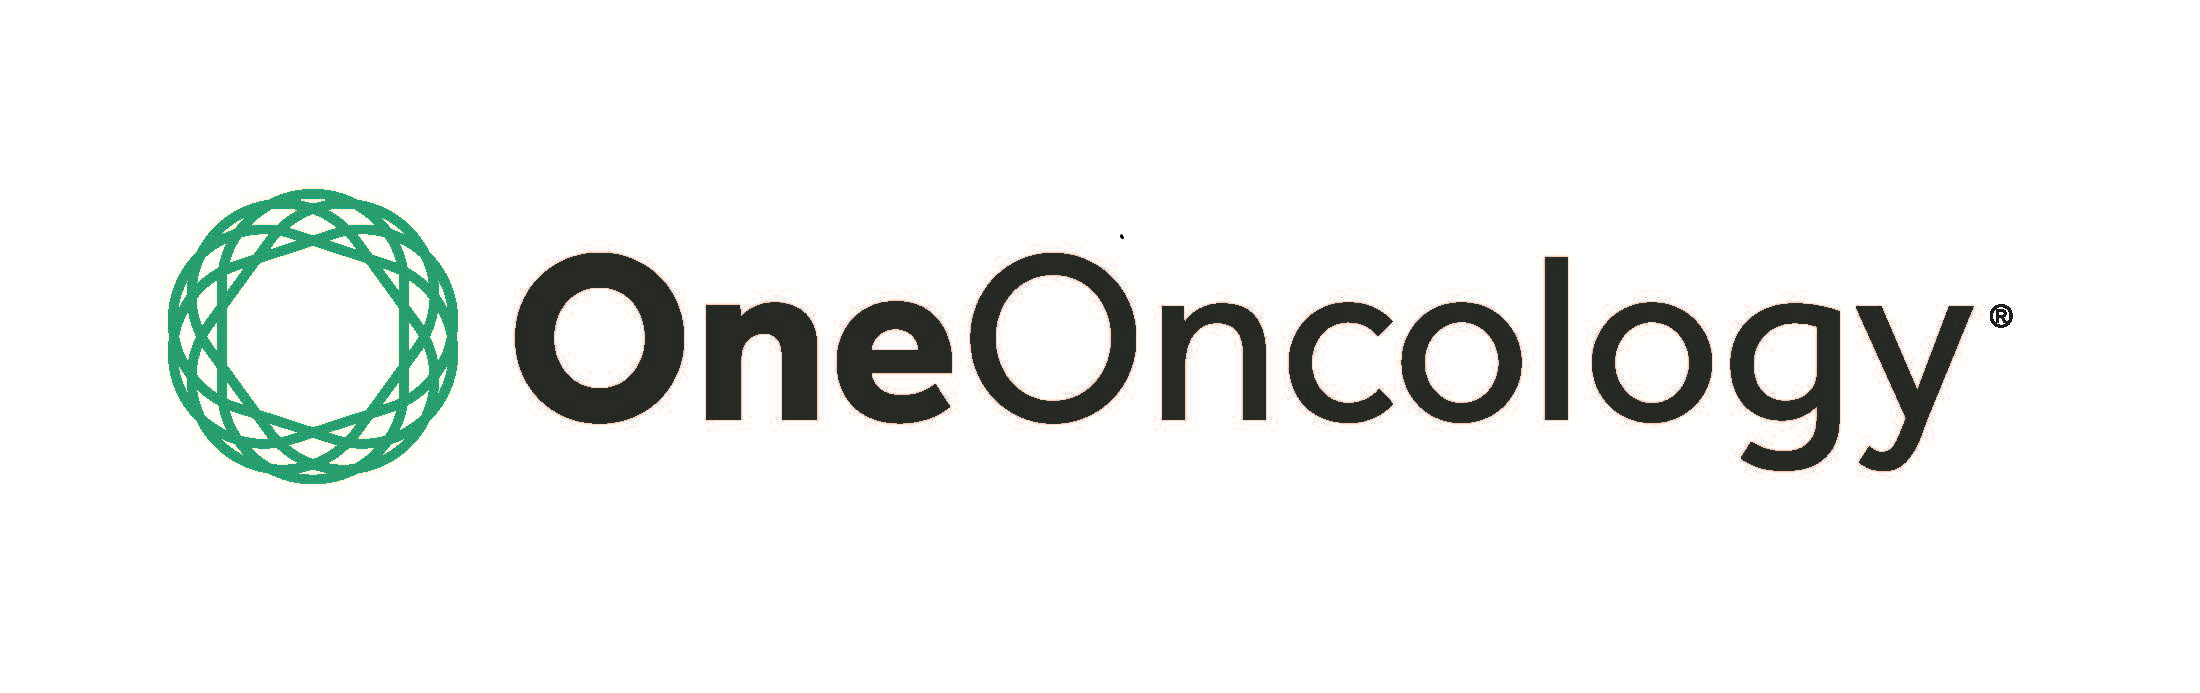 SAP Partners | Health System / Oncology | <b>One Oncology</b>